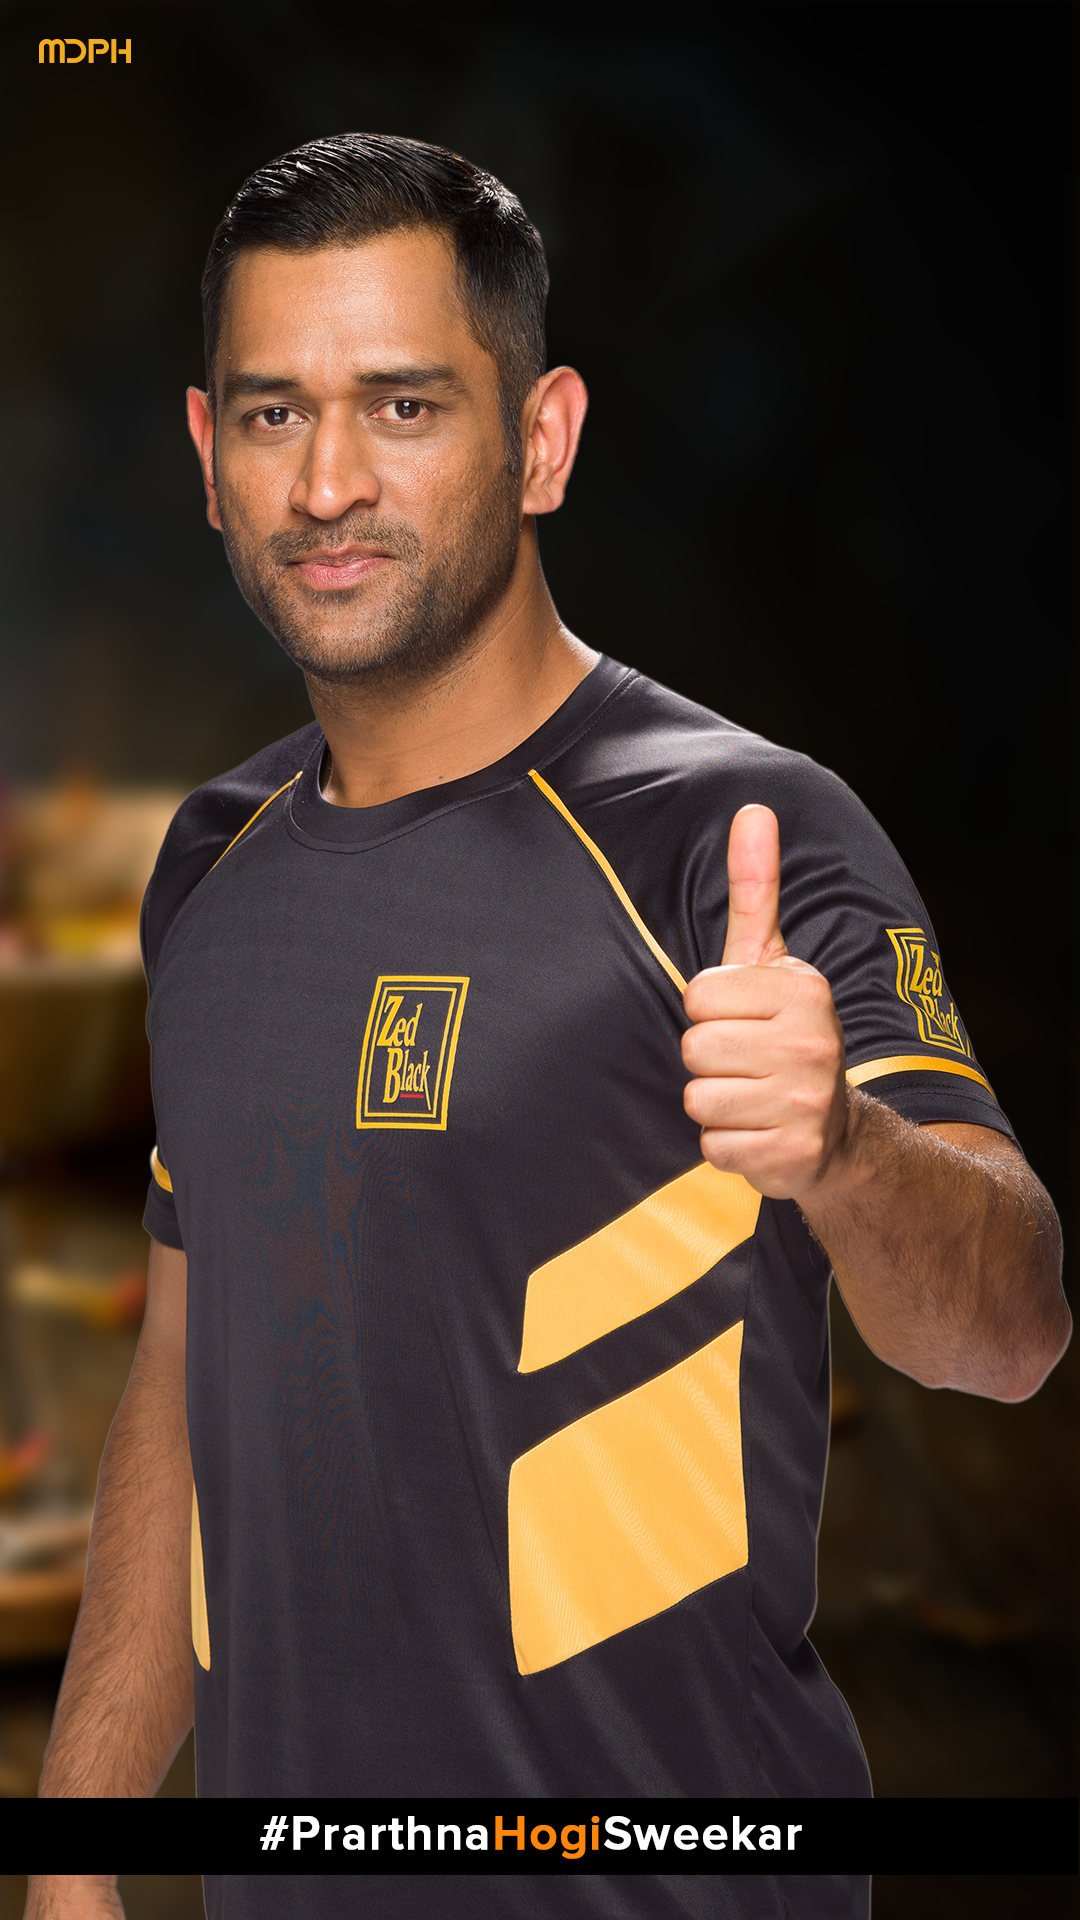 <a  href=&quot;https://www.zedblack.com/wp-content/uploads/2017/07/Dhoni-Mobile-Wallpaper-3.jpg&quot; class=&quot;green-btn&quot; download>Download</a><div class=&quot;shortcode-manager&quot;></div>